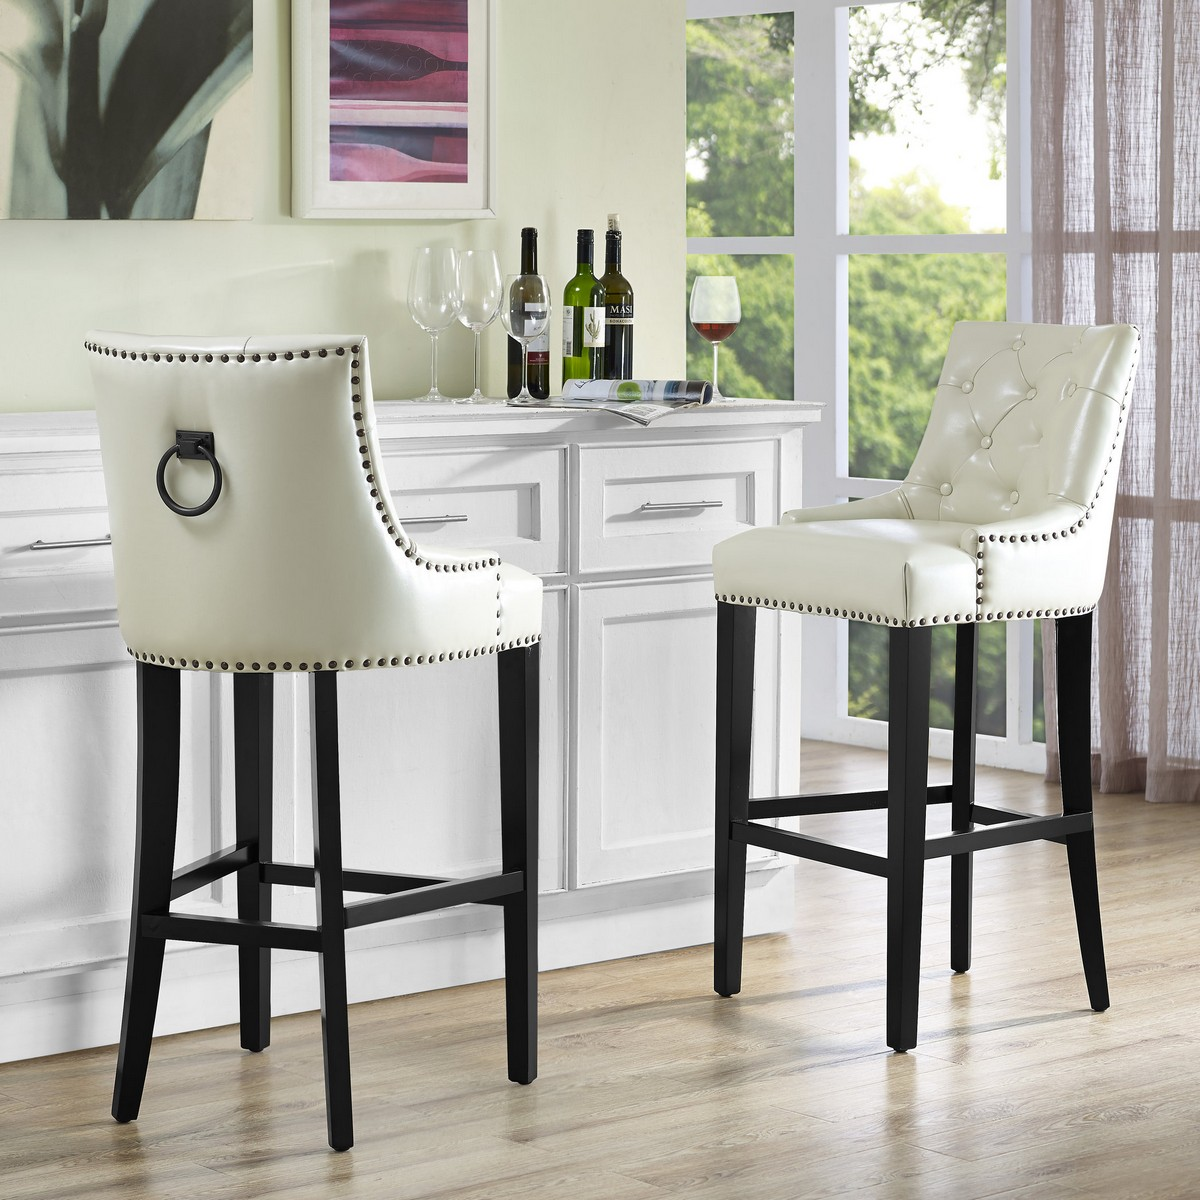 TOV Furniture Uptown Cream Leather Counter Stool & TOV Furniture Uptown Cream Leather Counter Stool BS17 at ... islam-shia.org